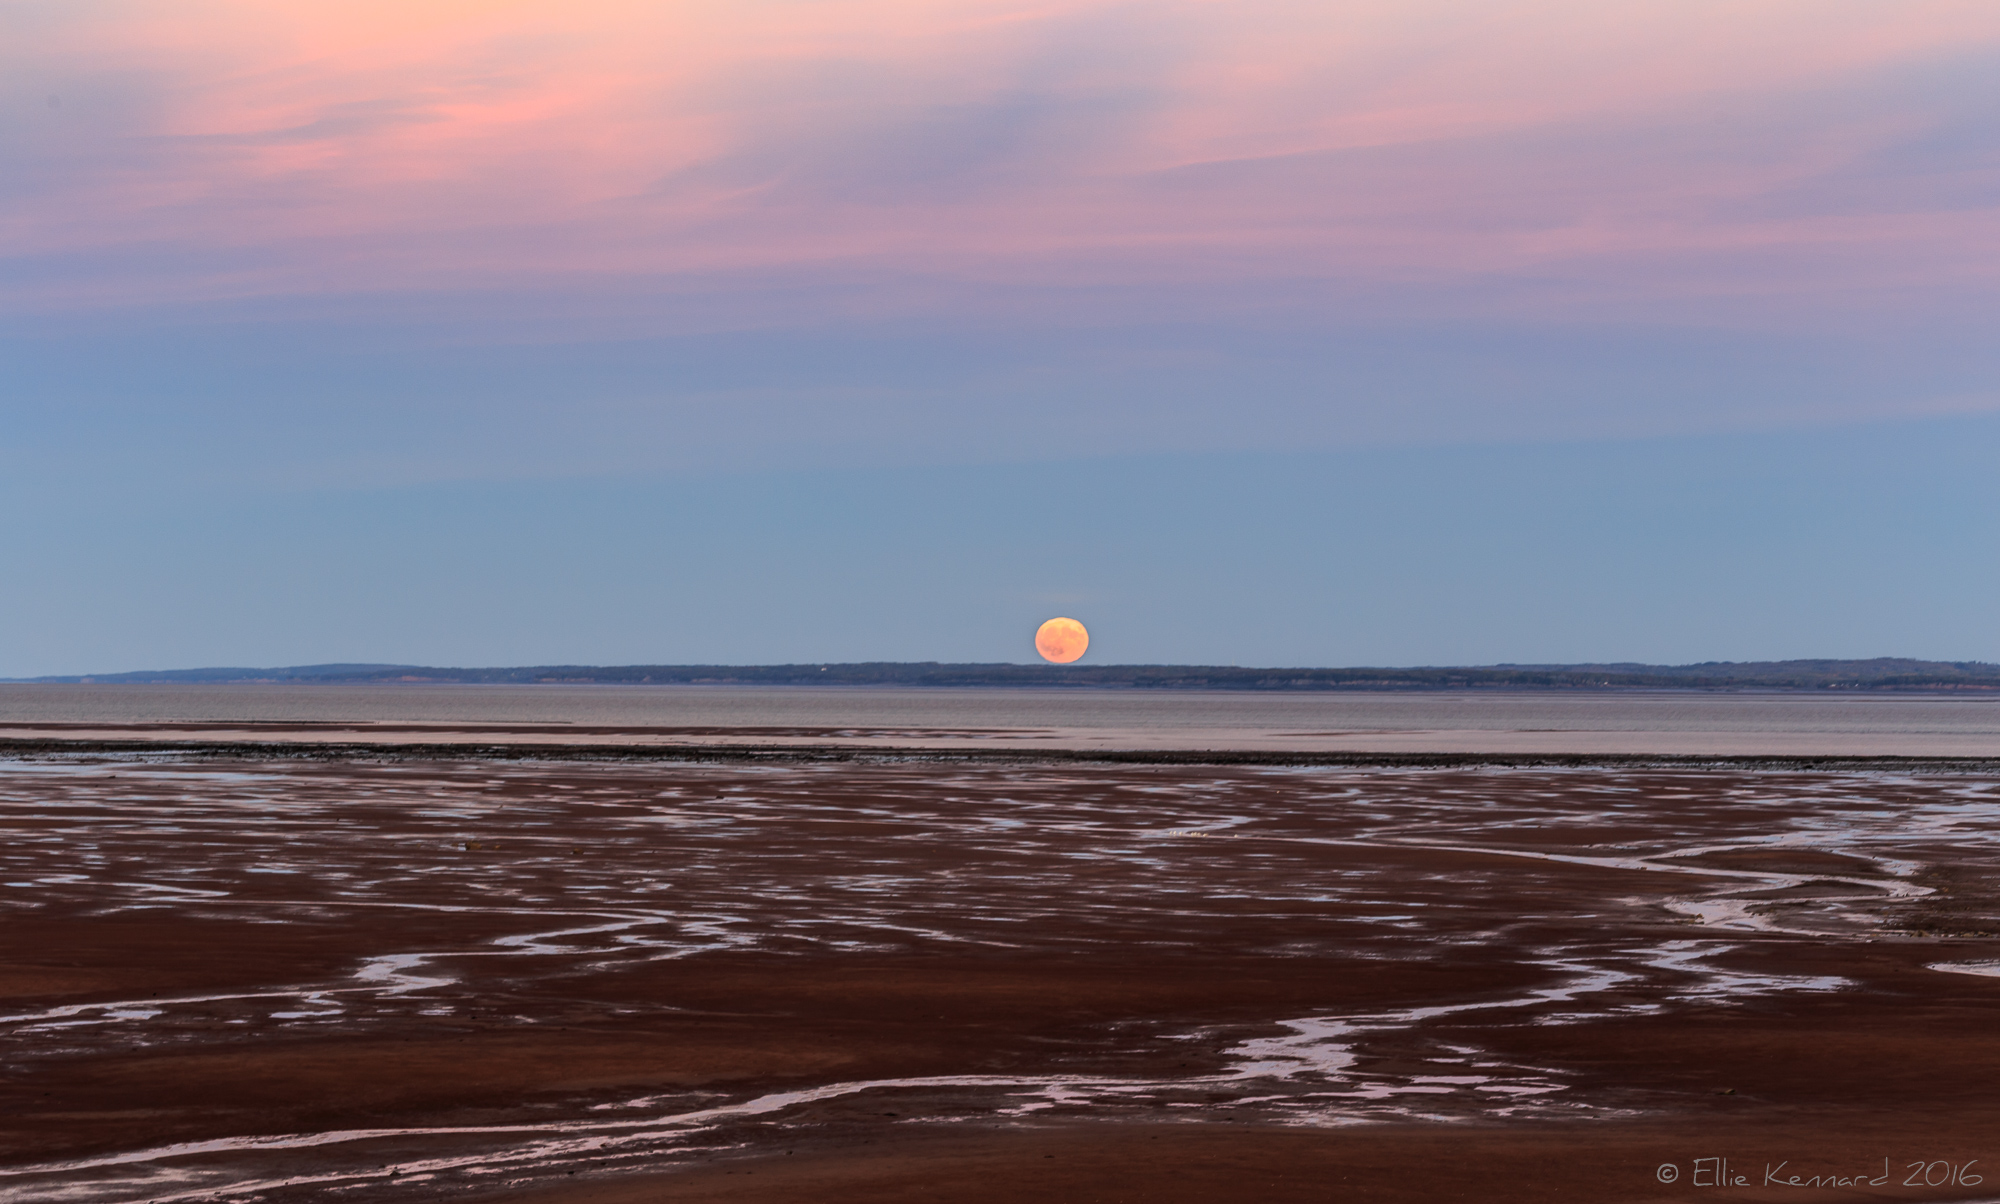 Hunters moon, Supermoon over the Minas Basin- Ellie Kennard 2016